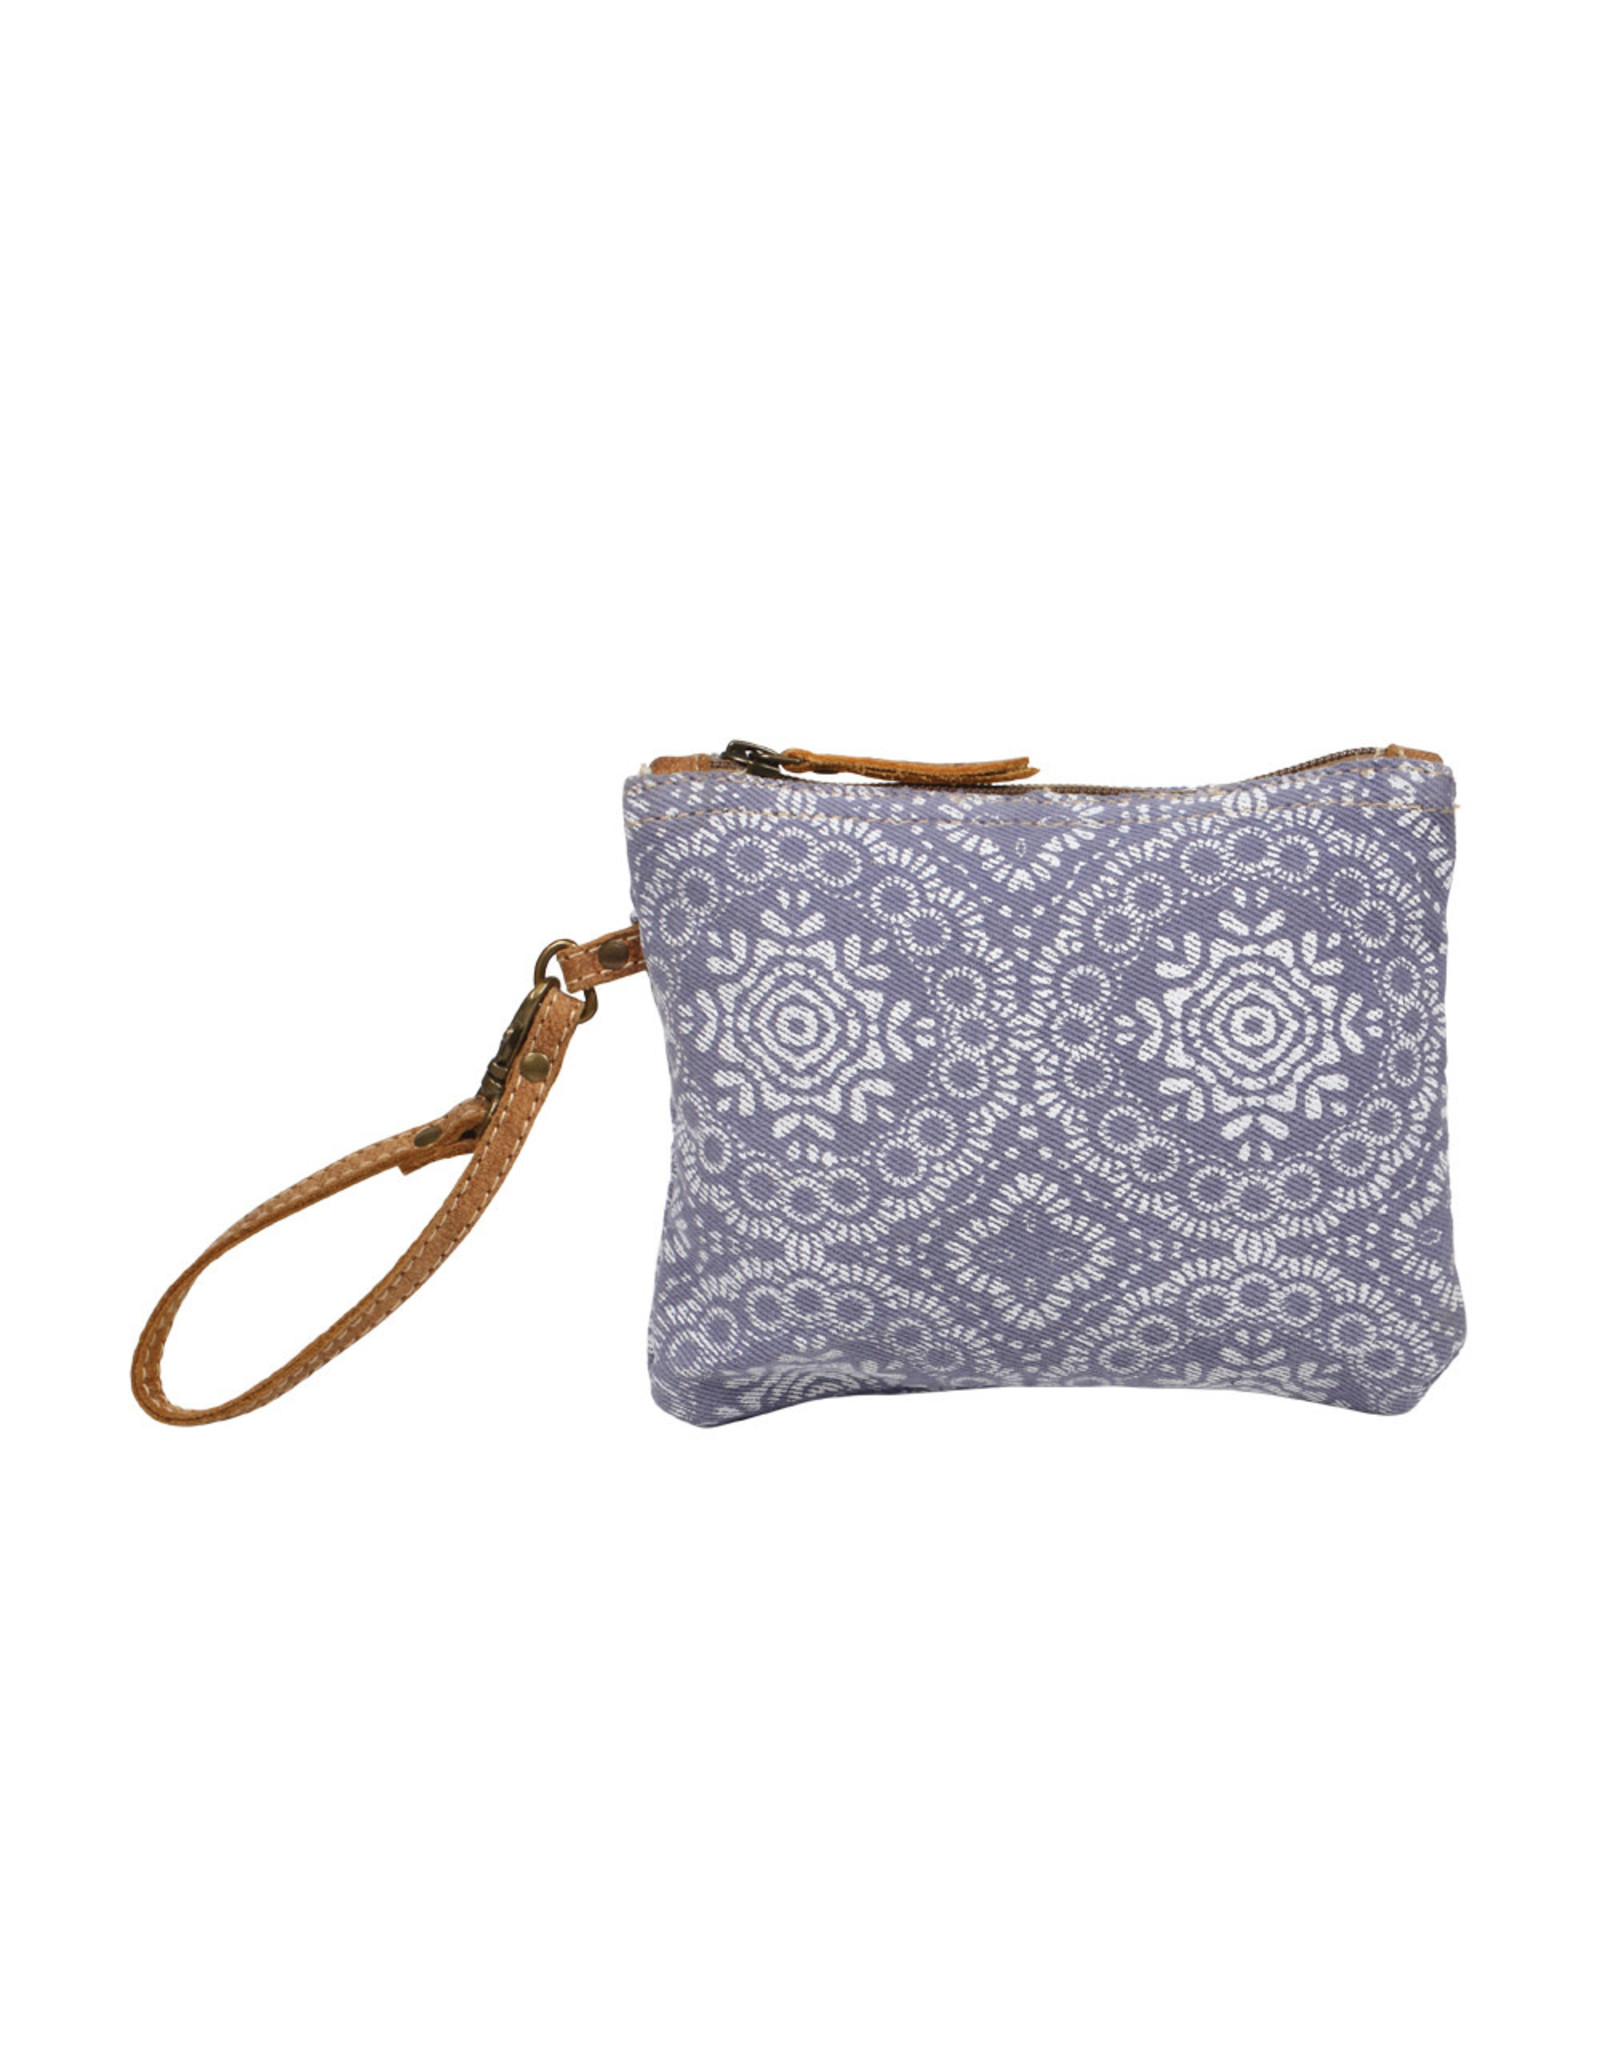 Myra Bags S-1244 Lavender Abstract Pouch